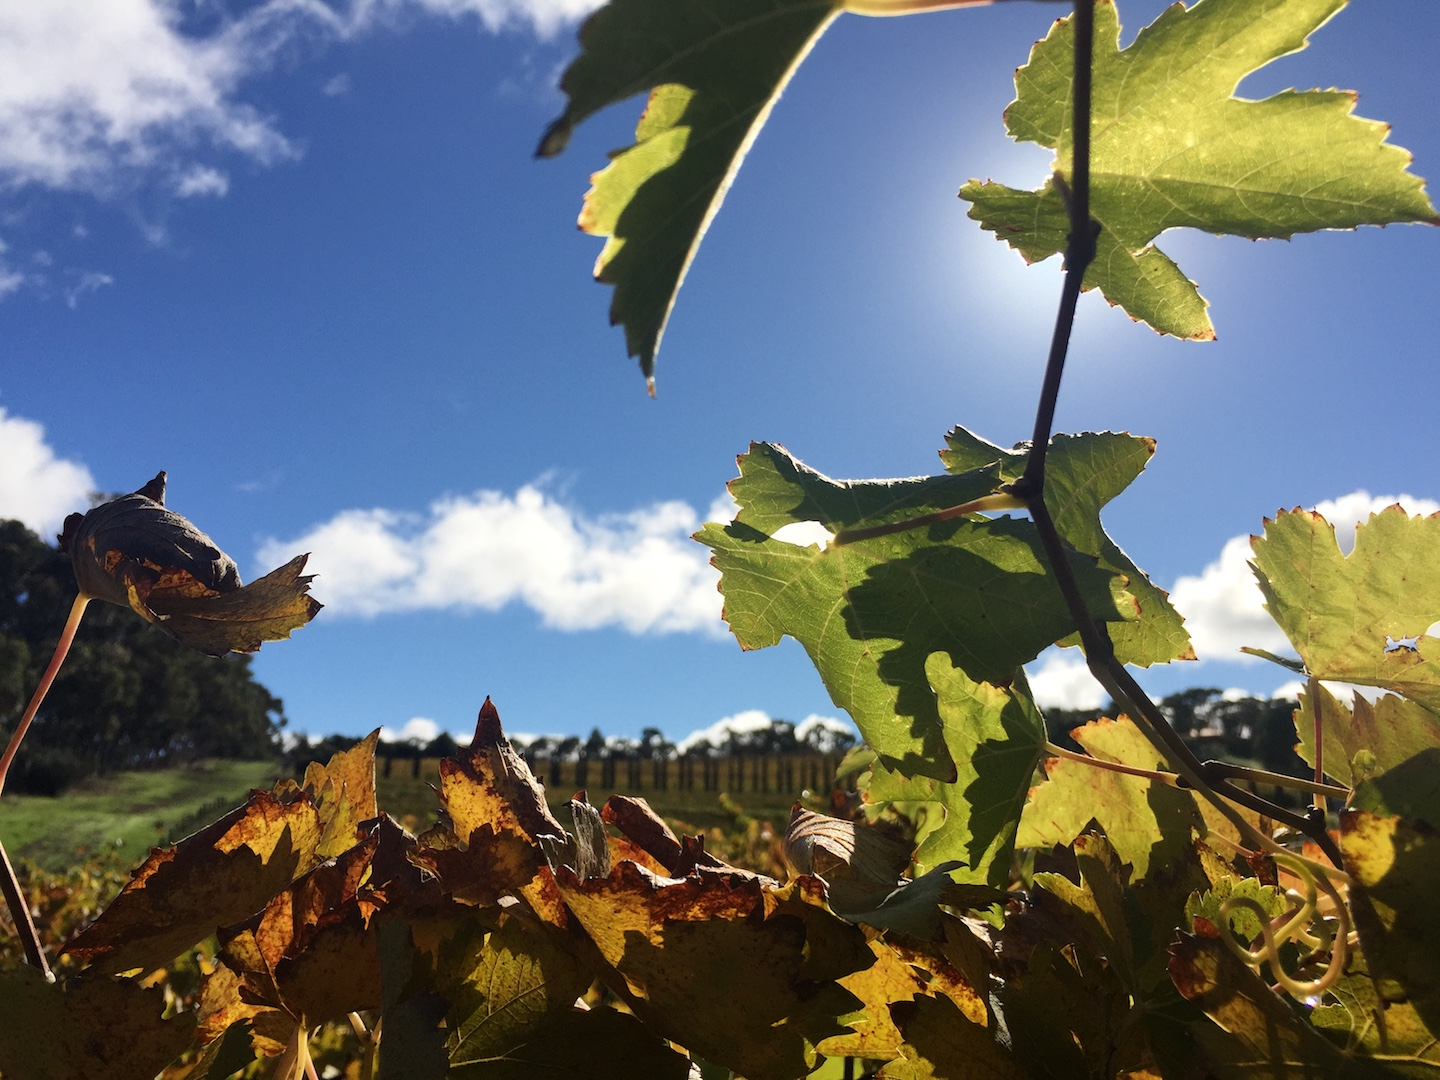 See the vine leaves change with the Autumn season.